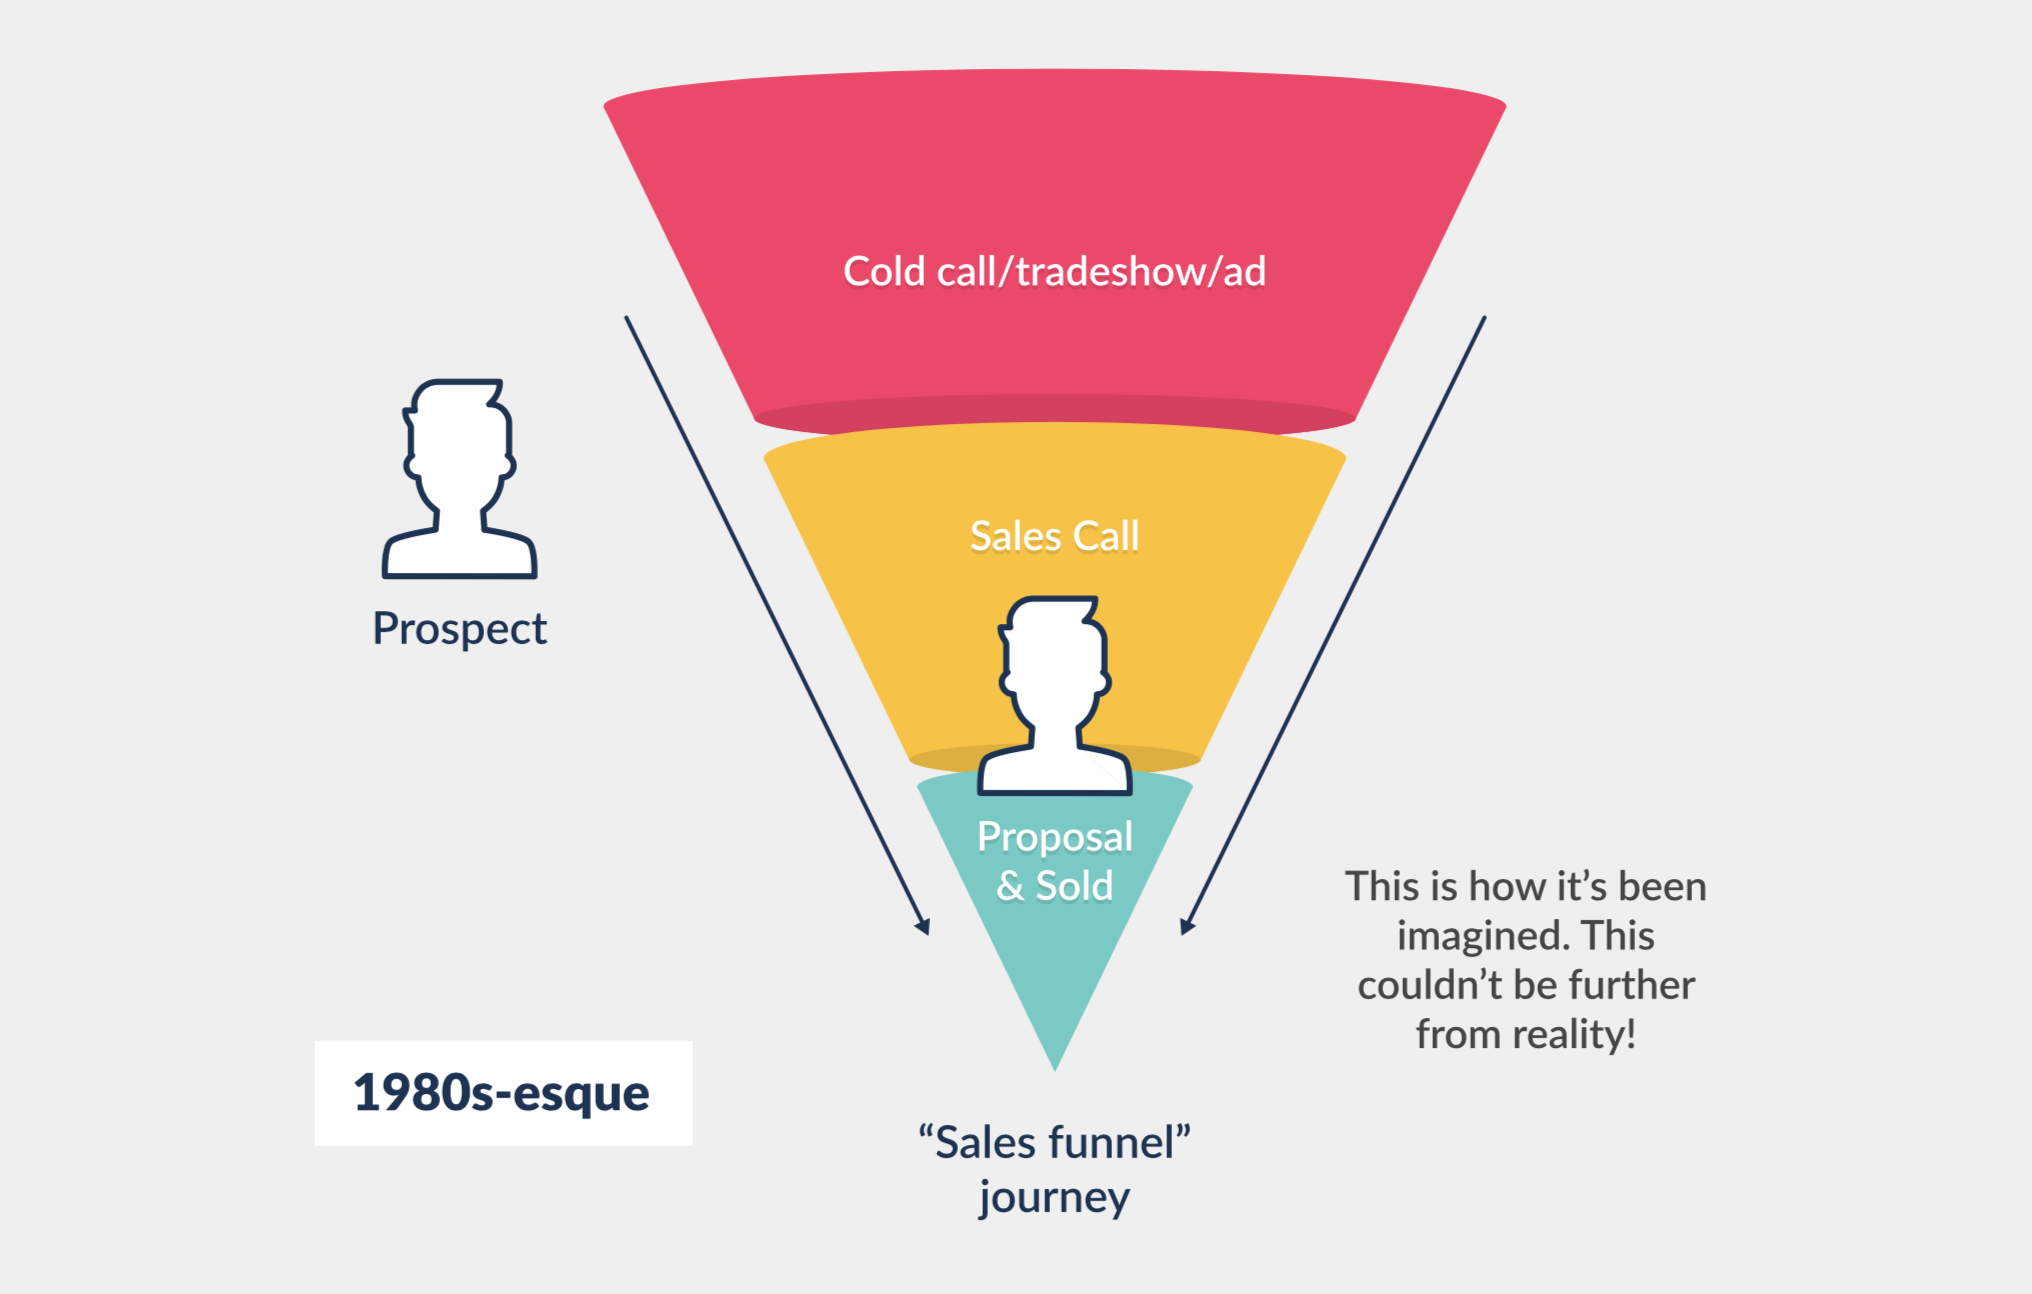 sales funnel sales journey